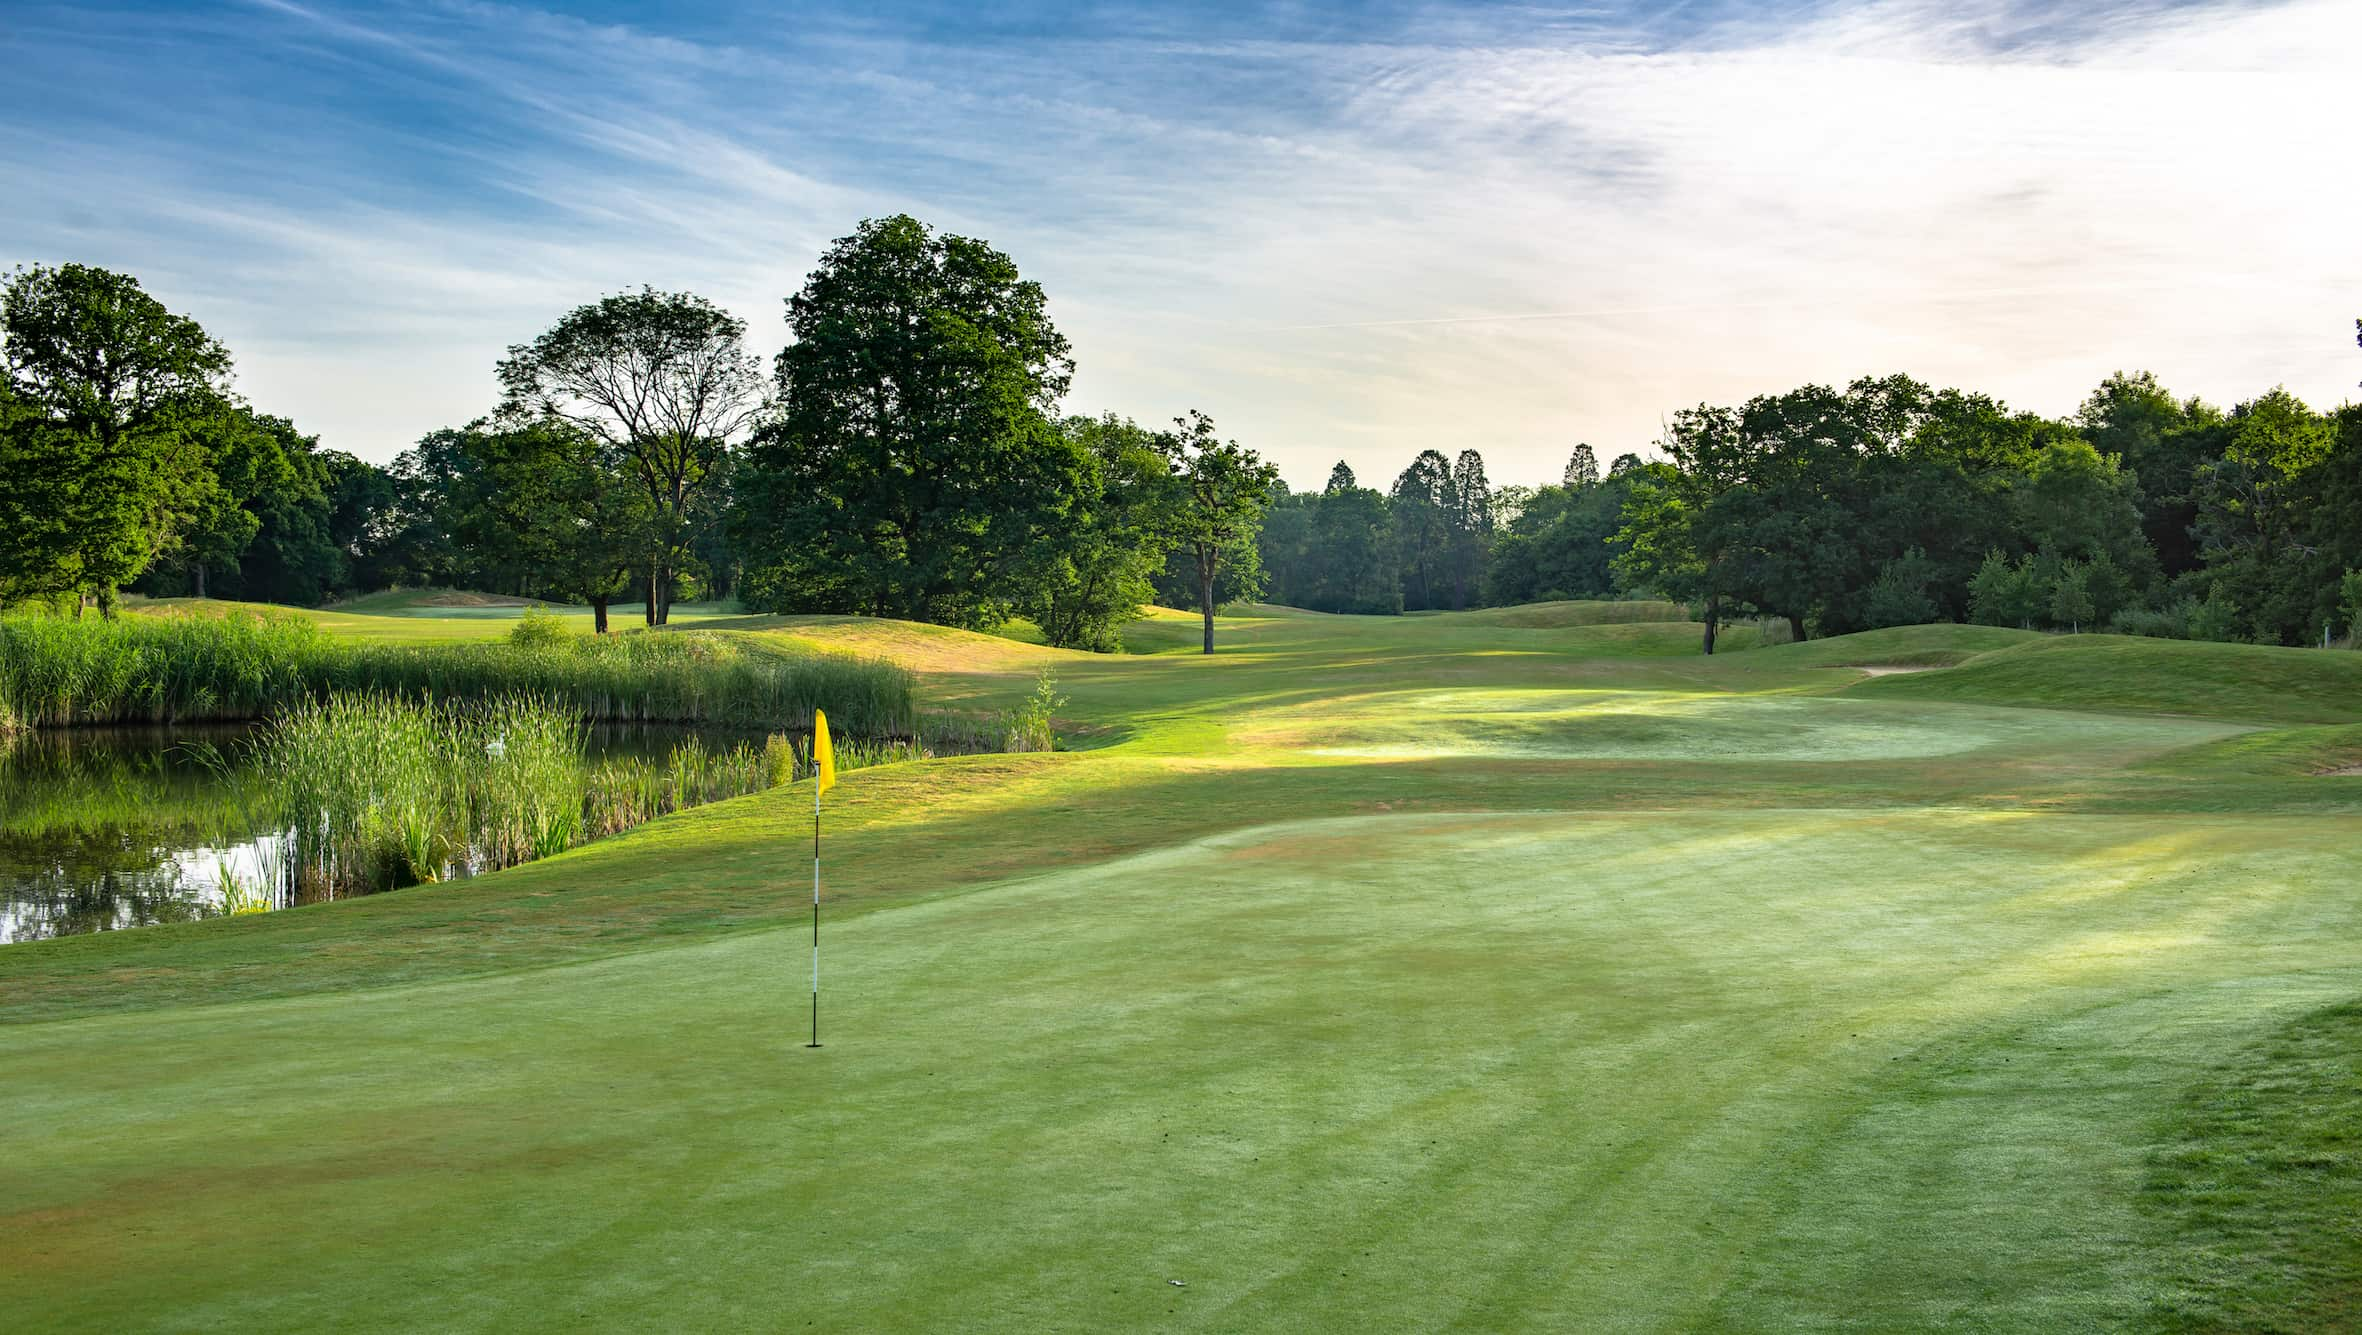 Horsham Golf Club 'The Oaks' by Contour Golf Ltd